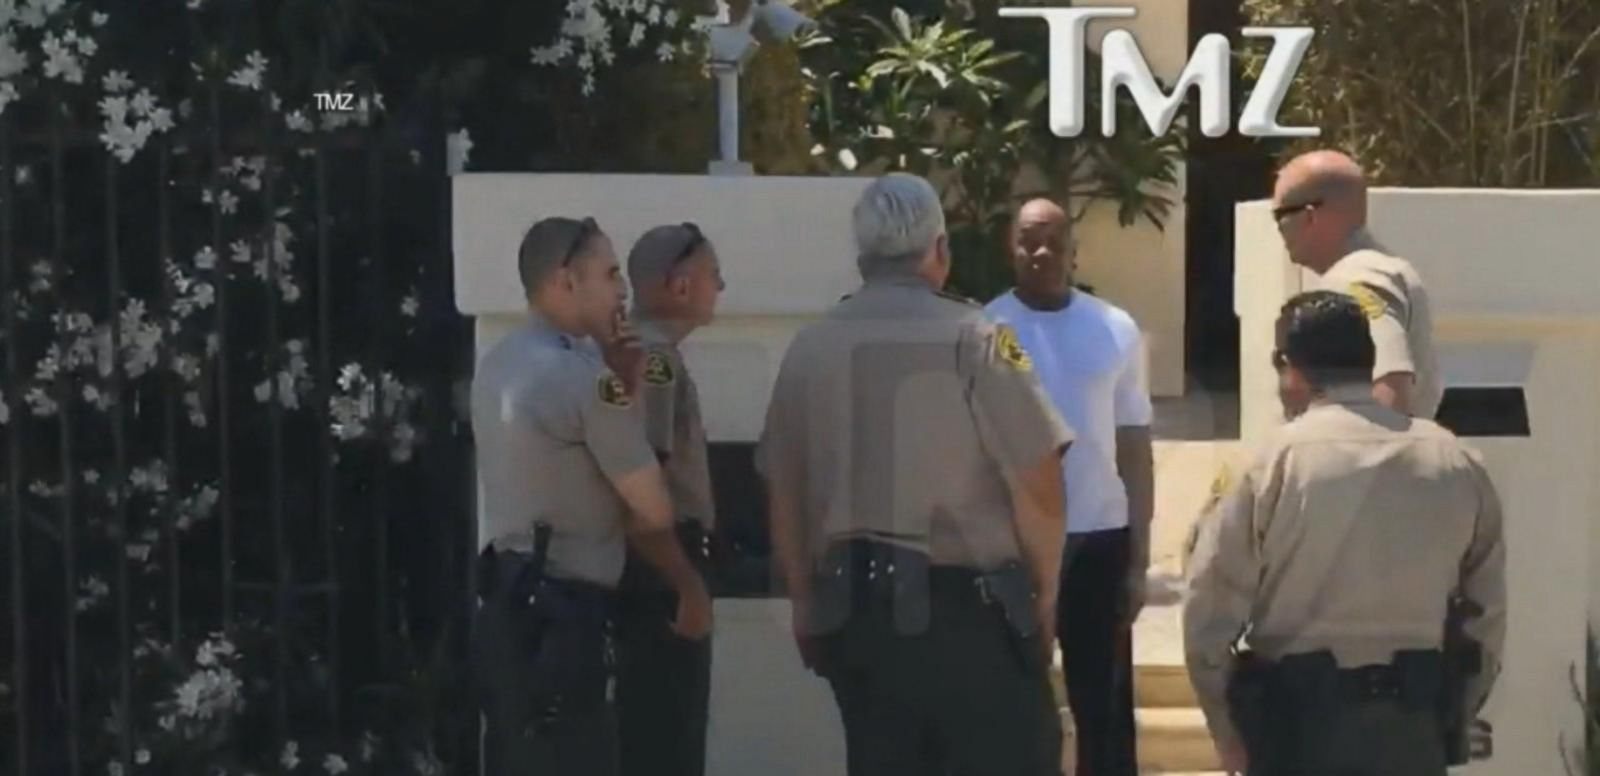 VIDEO: Dr. Dre Handcuffed and Searched by Cops After Road Rage Dispute